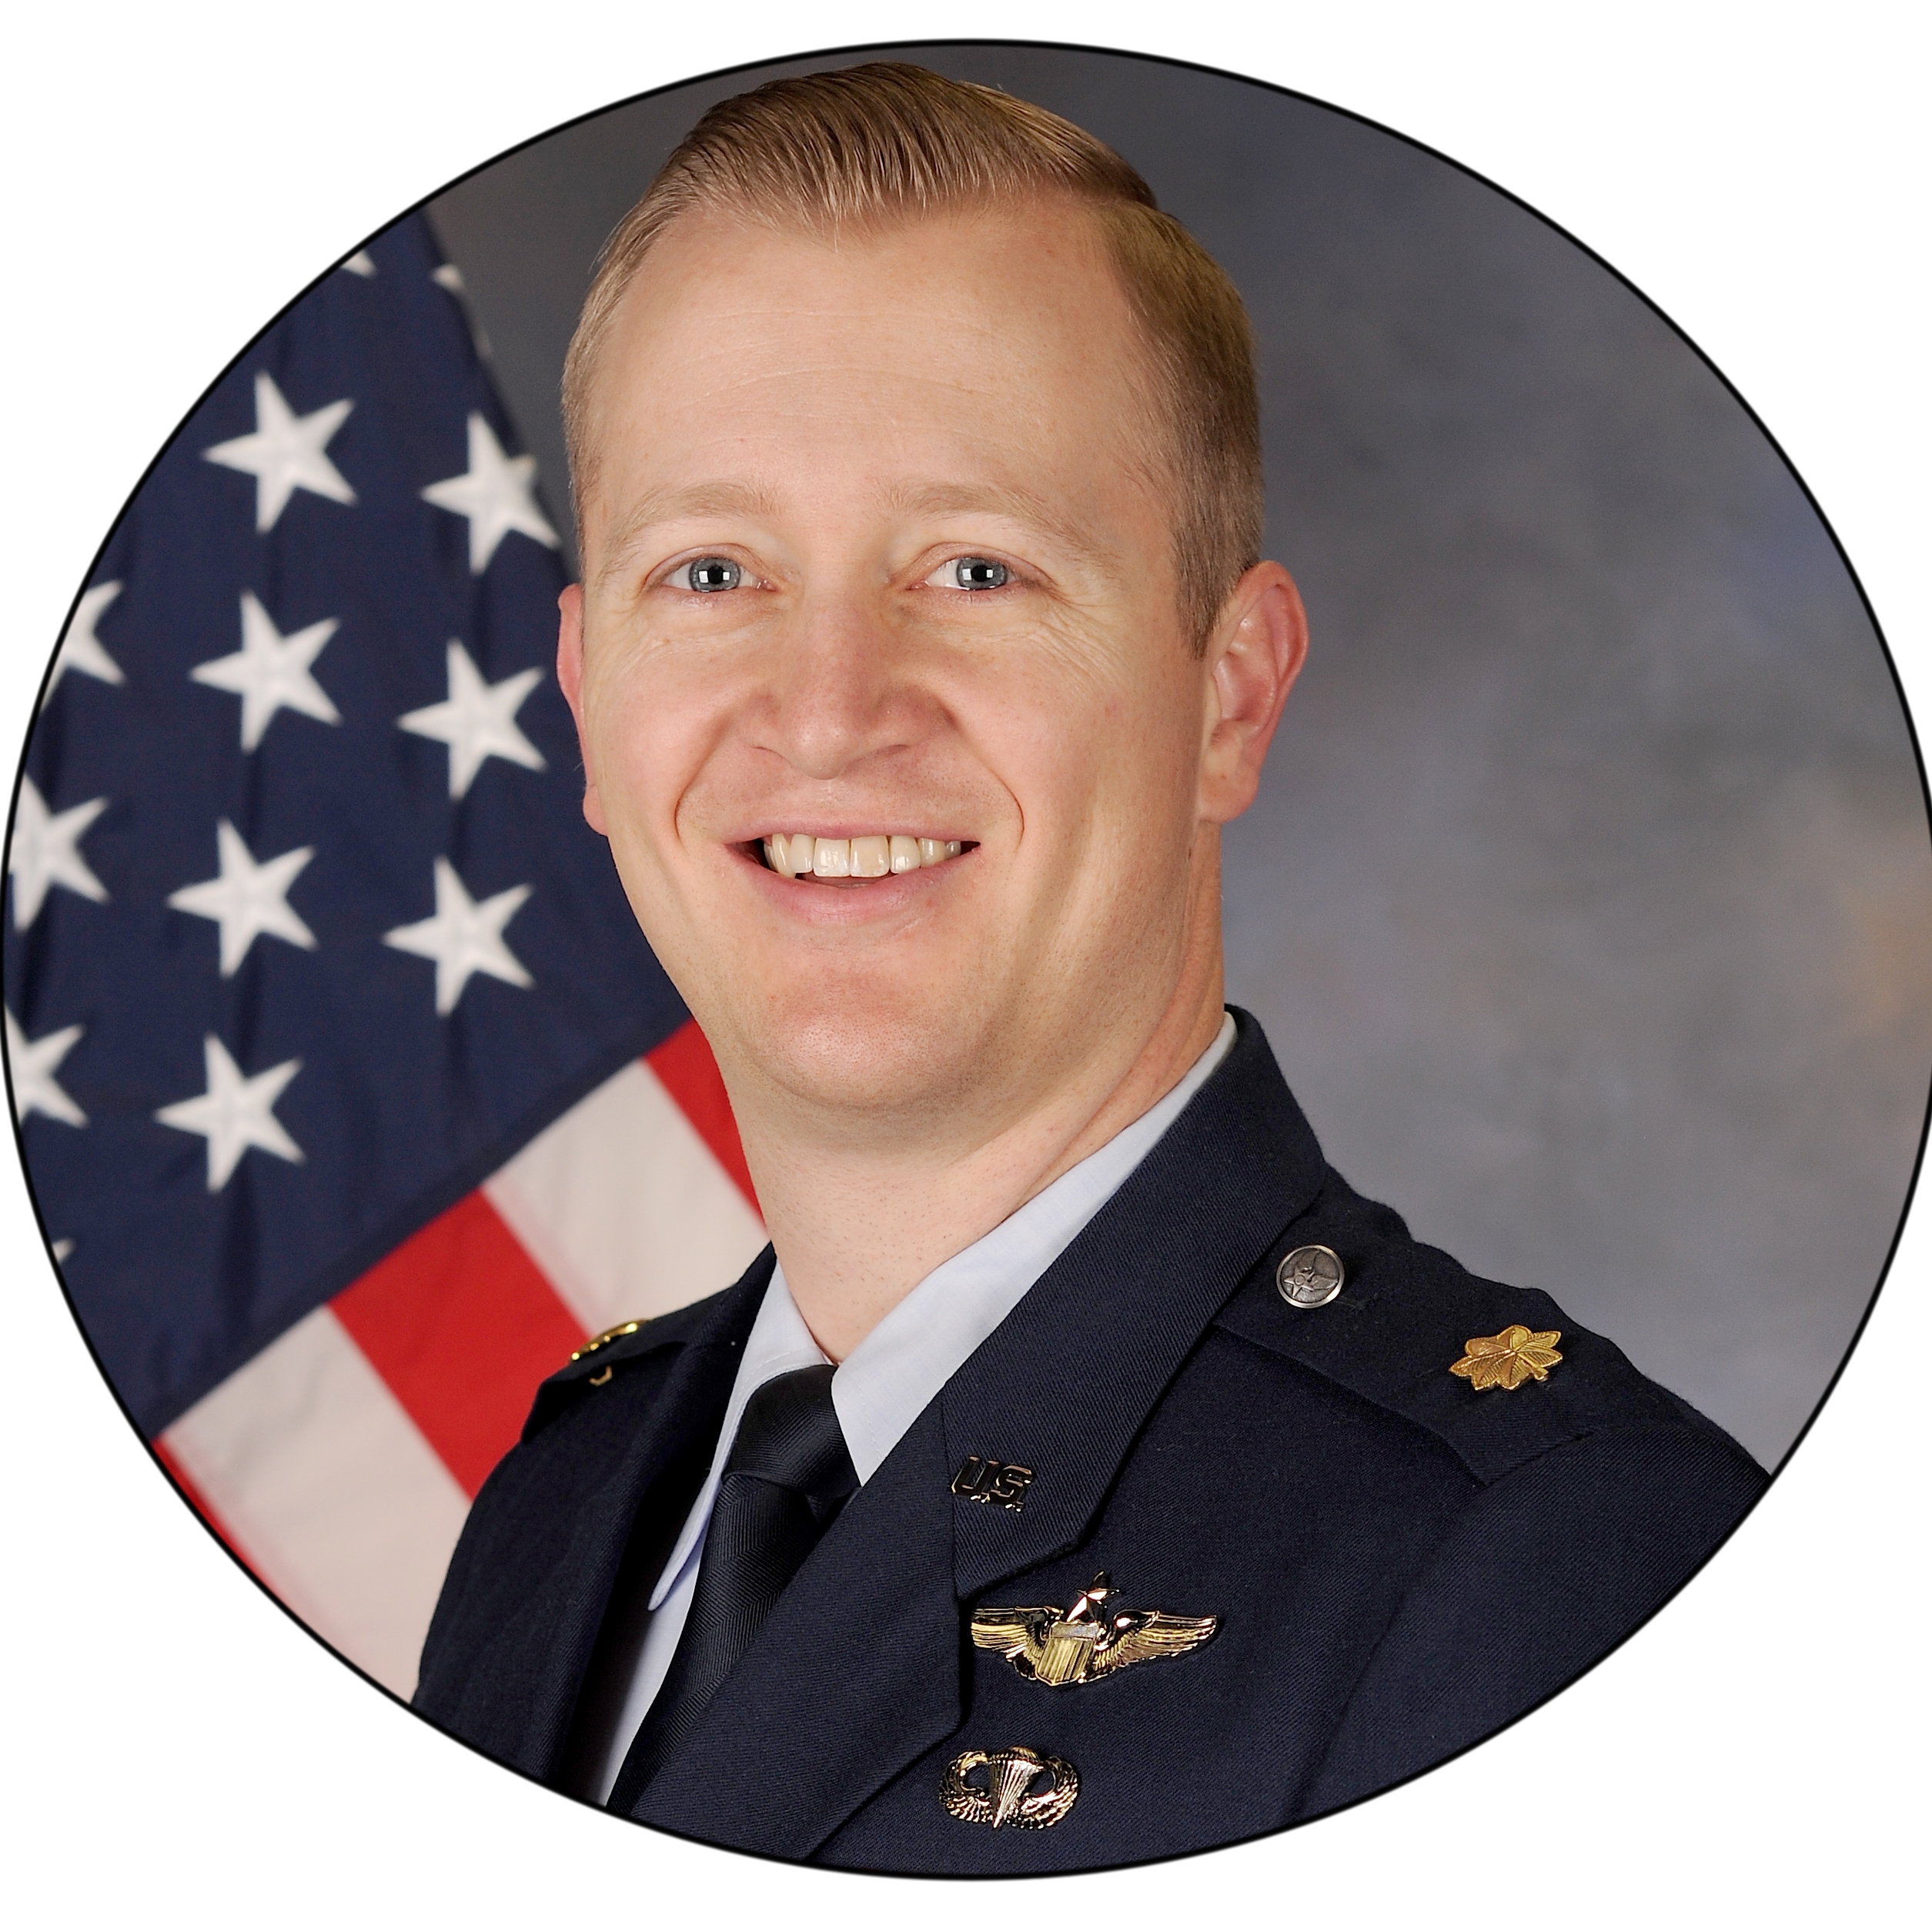 Mark Watson, Chief Wing Transformation & Innovation Officer at U.S. Air Force